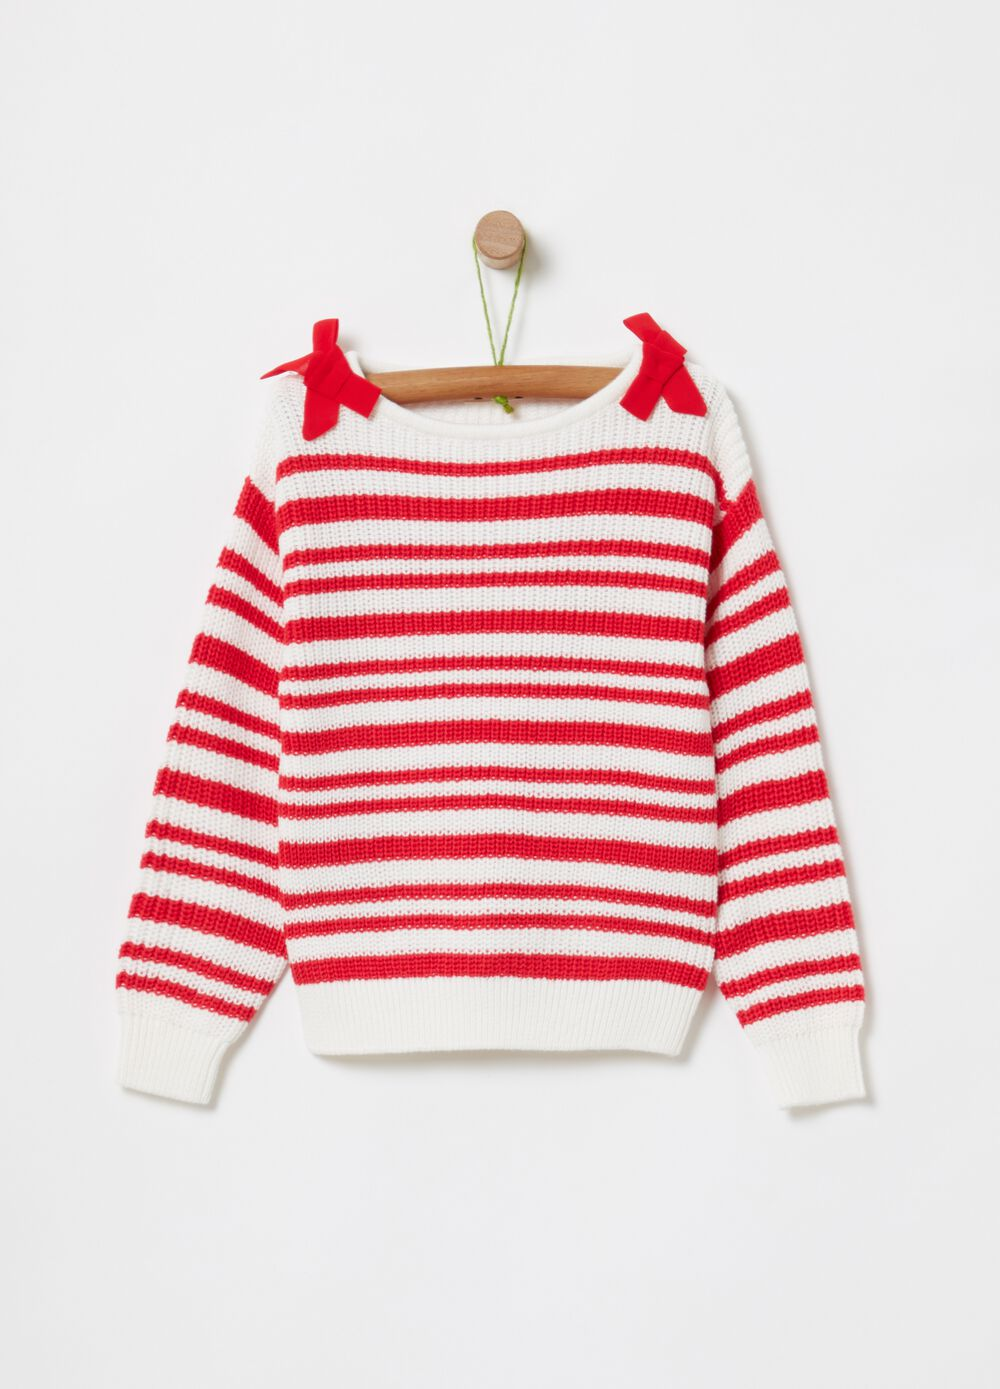 Striped knitted top in 100% cotton